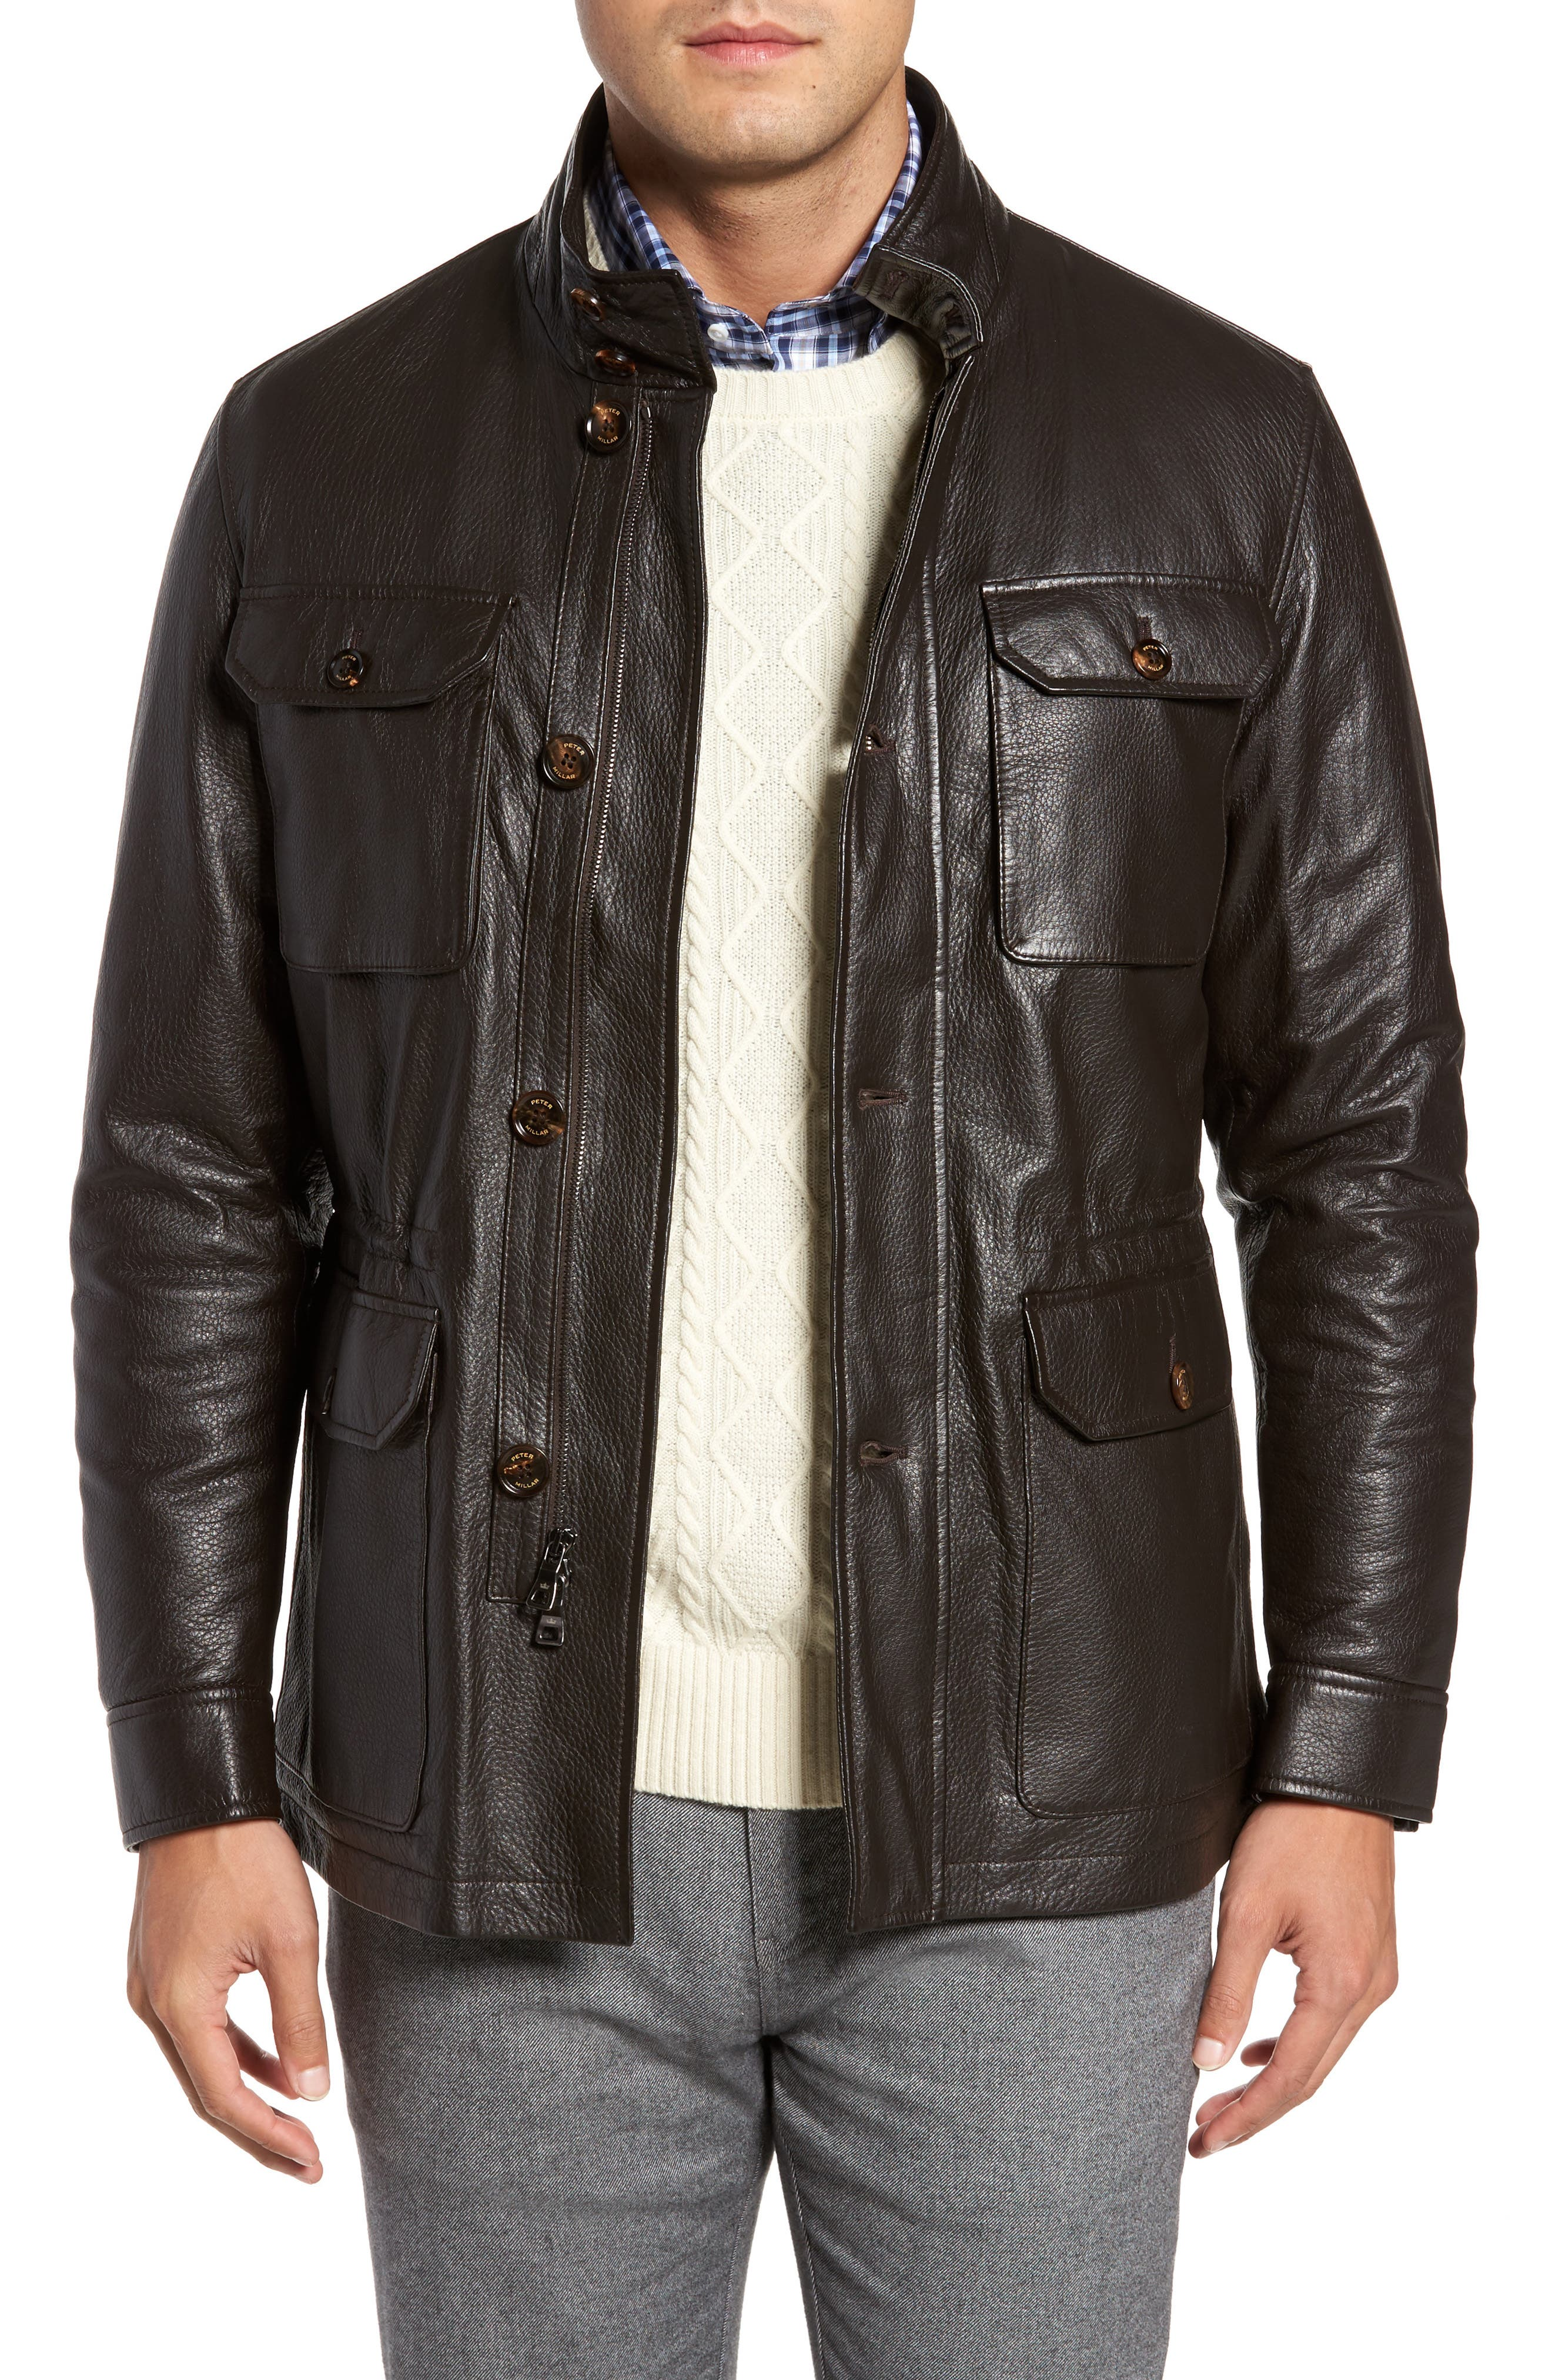 Woodland Discovery Deerskin Leather Jacket,                         Main,                         color, 203